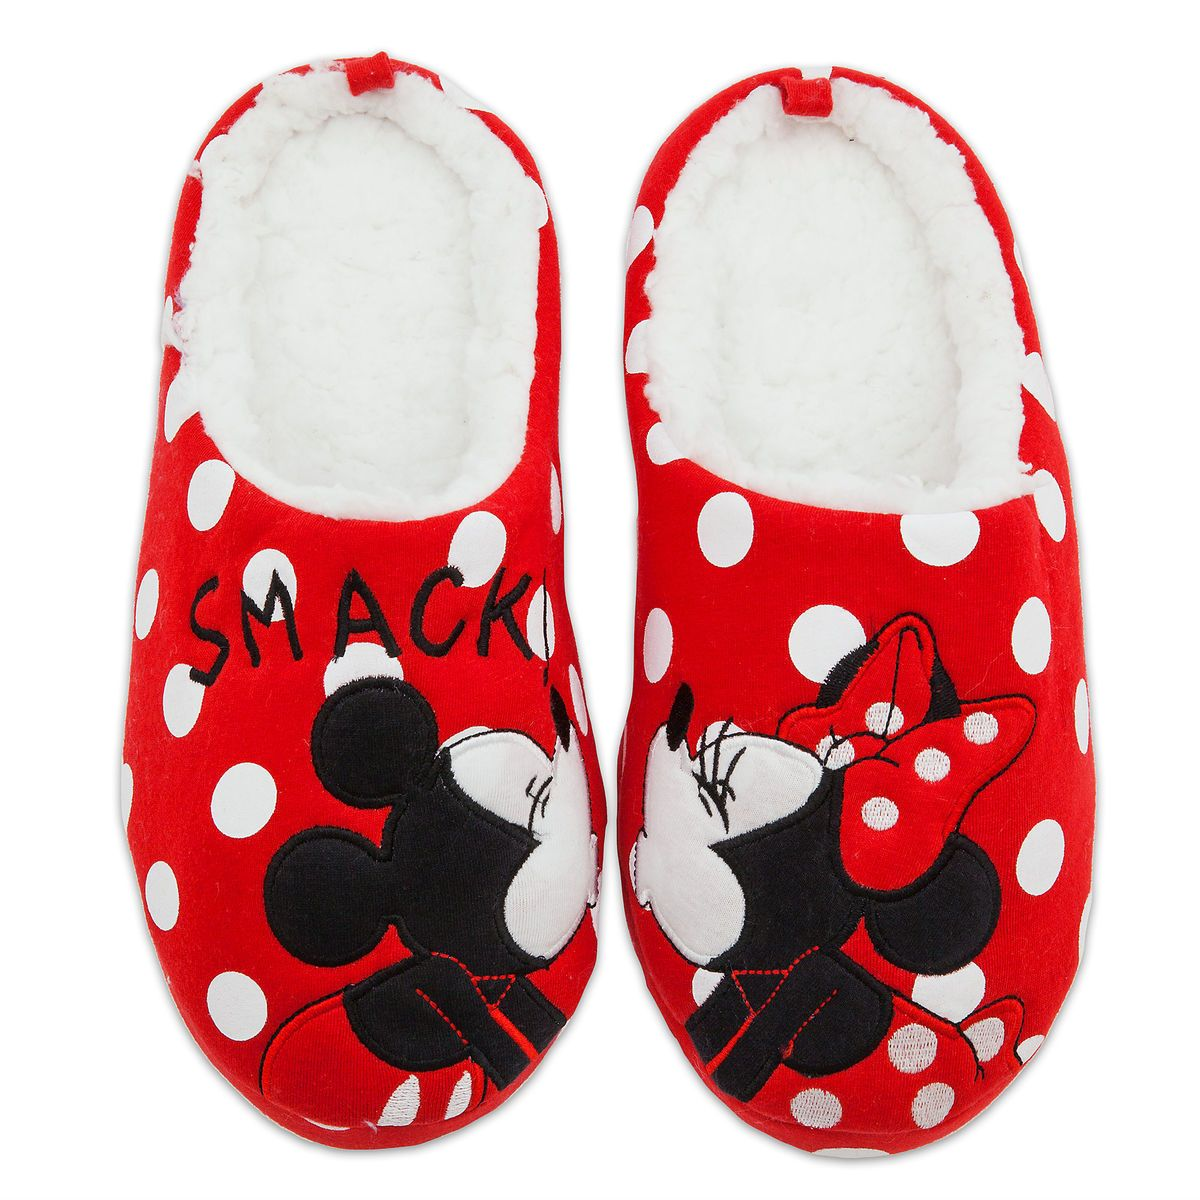 4f5acbcf75286 Mickey and Minnie Mouse Slippers for Women | Wardrobe Wishes ...